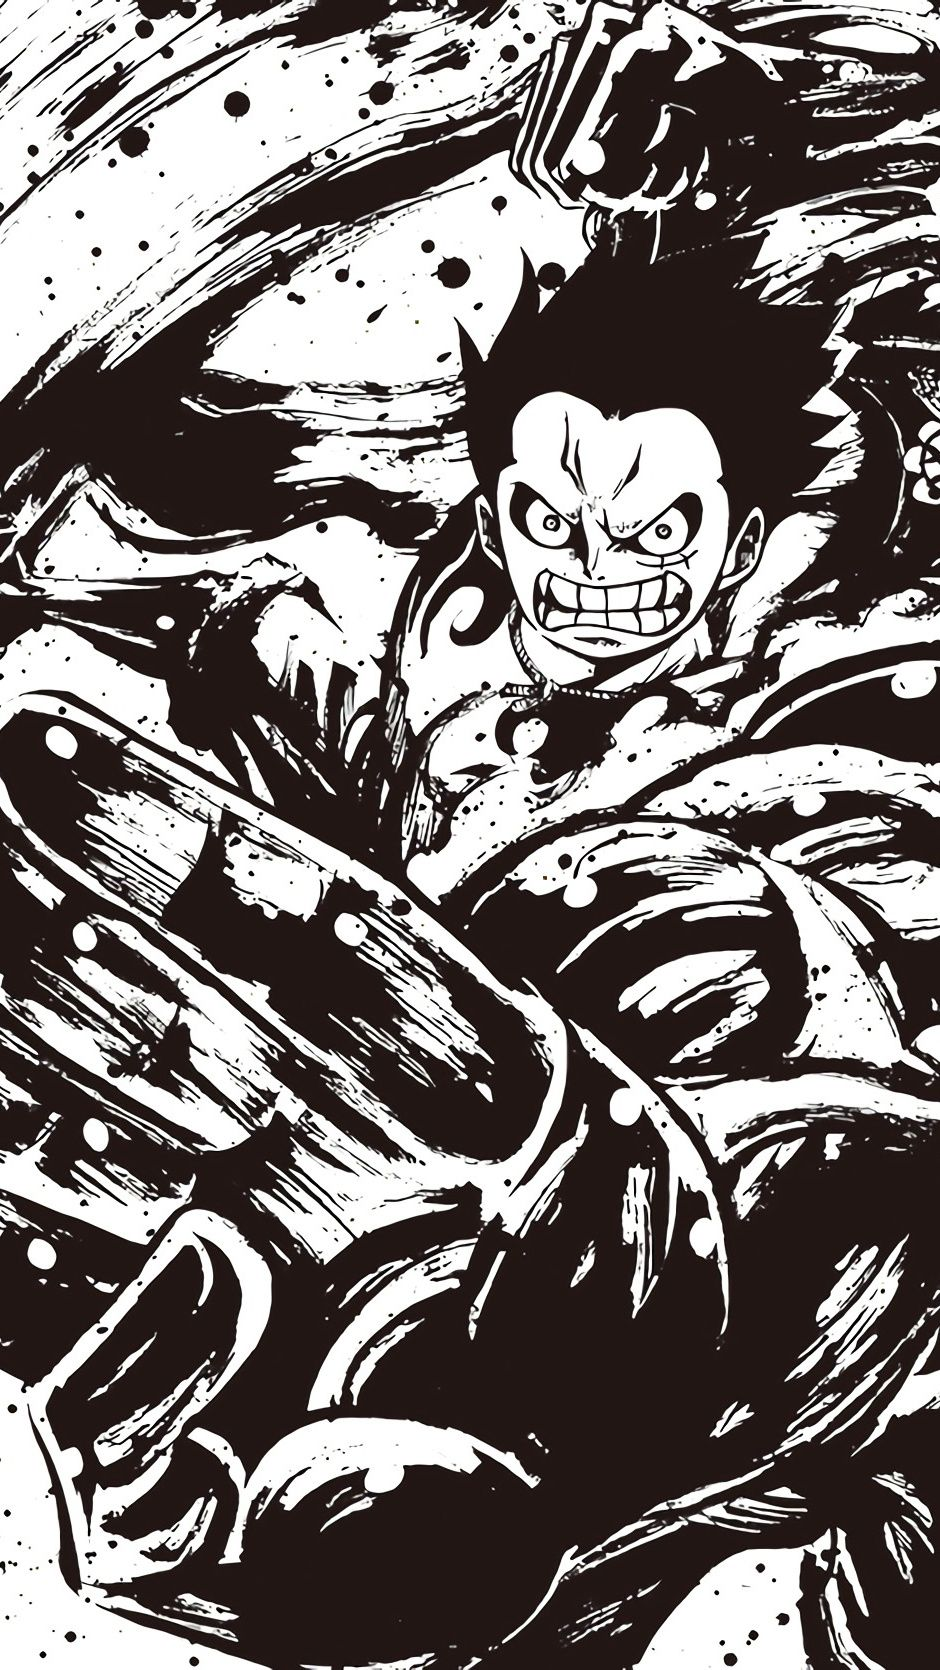 Luffy Gear 4 One Piece Comics Video Game Series Art Anime